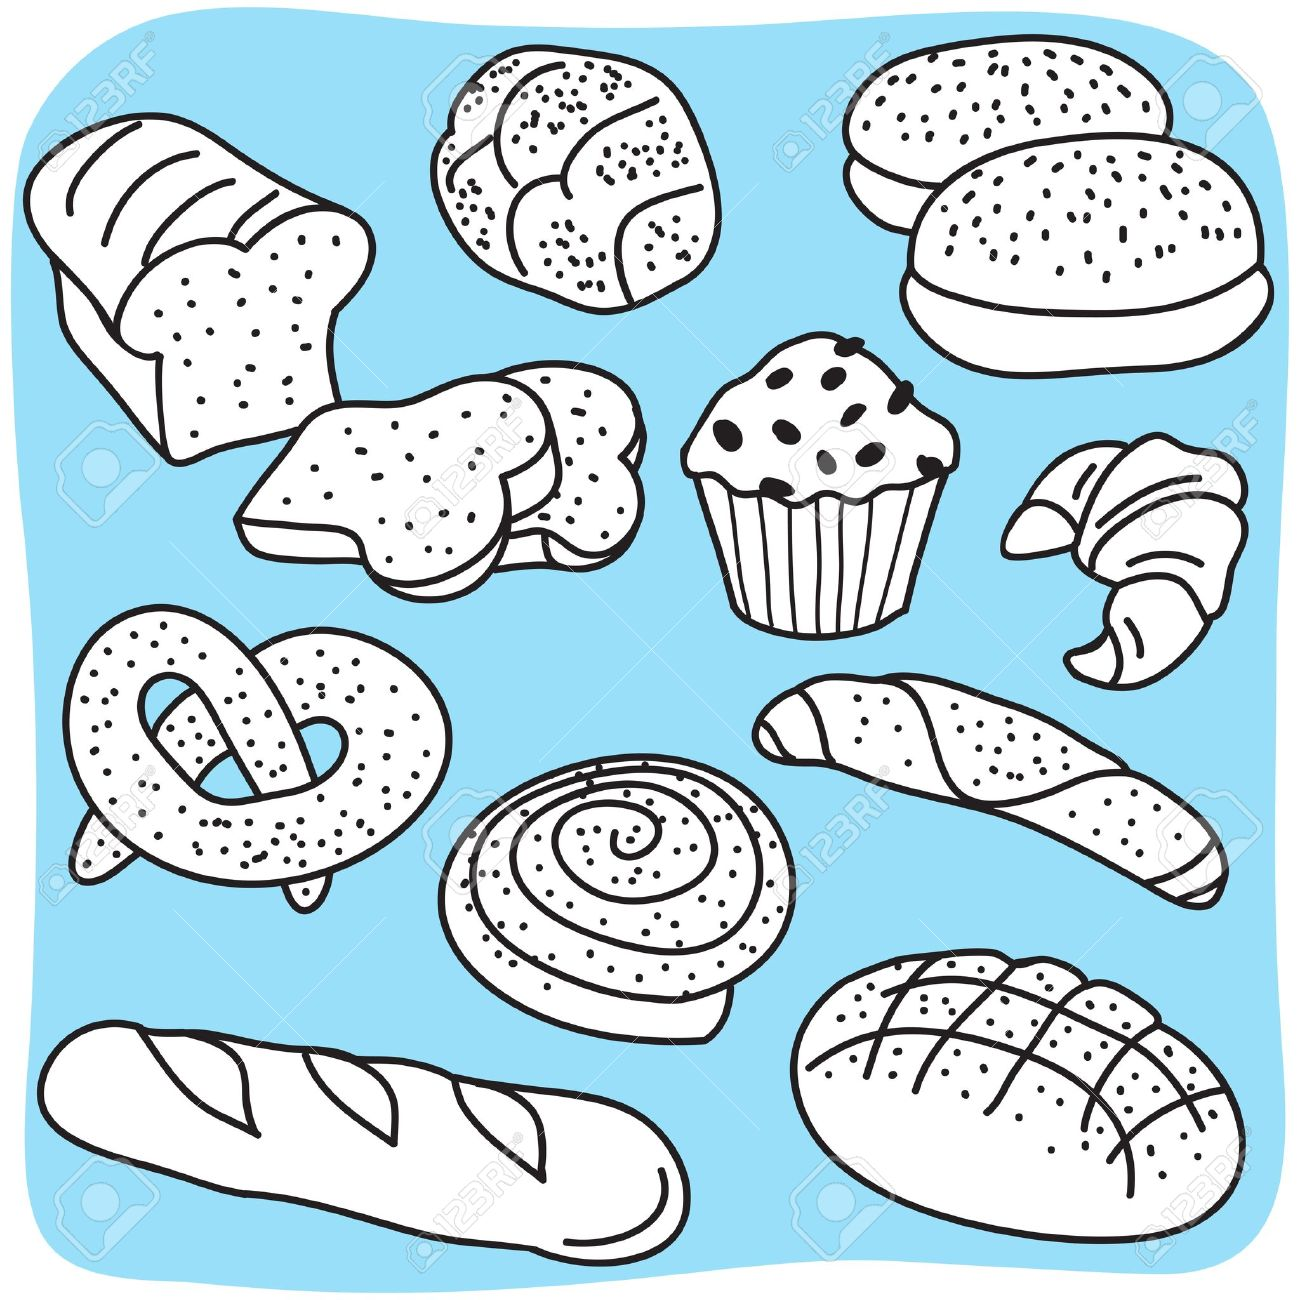 Bakery products, bread and cereal goods - hand-drawn illustration Stock Vector - 14186751